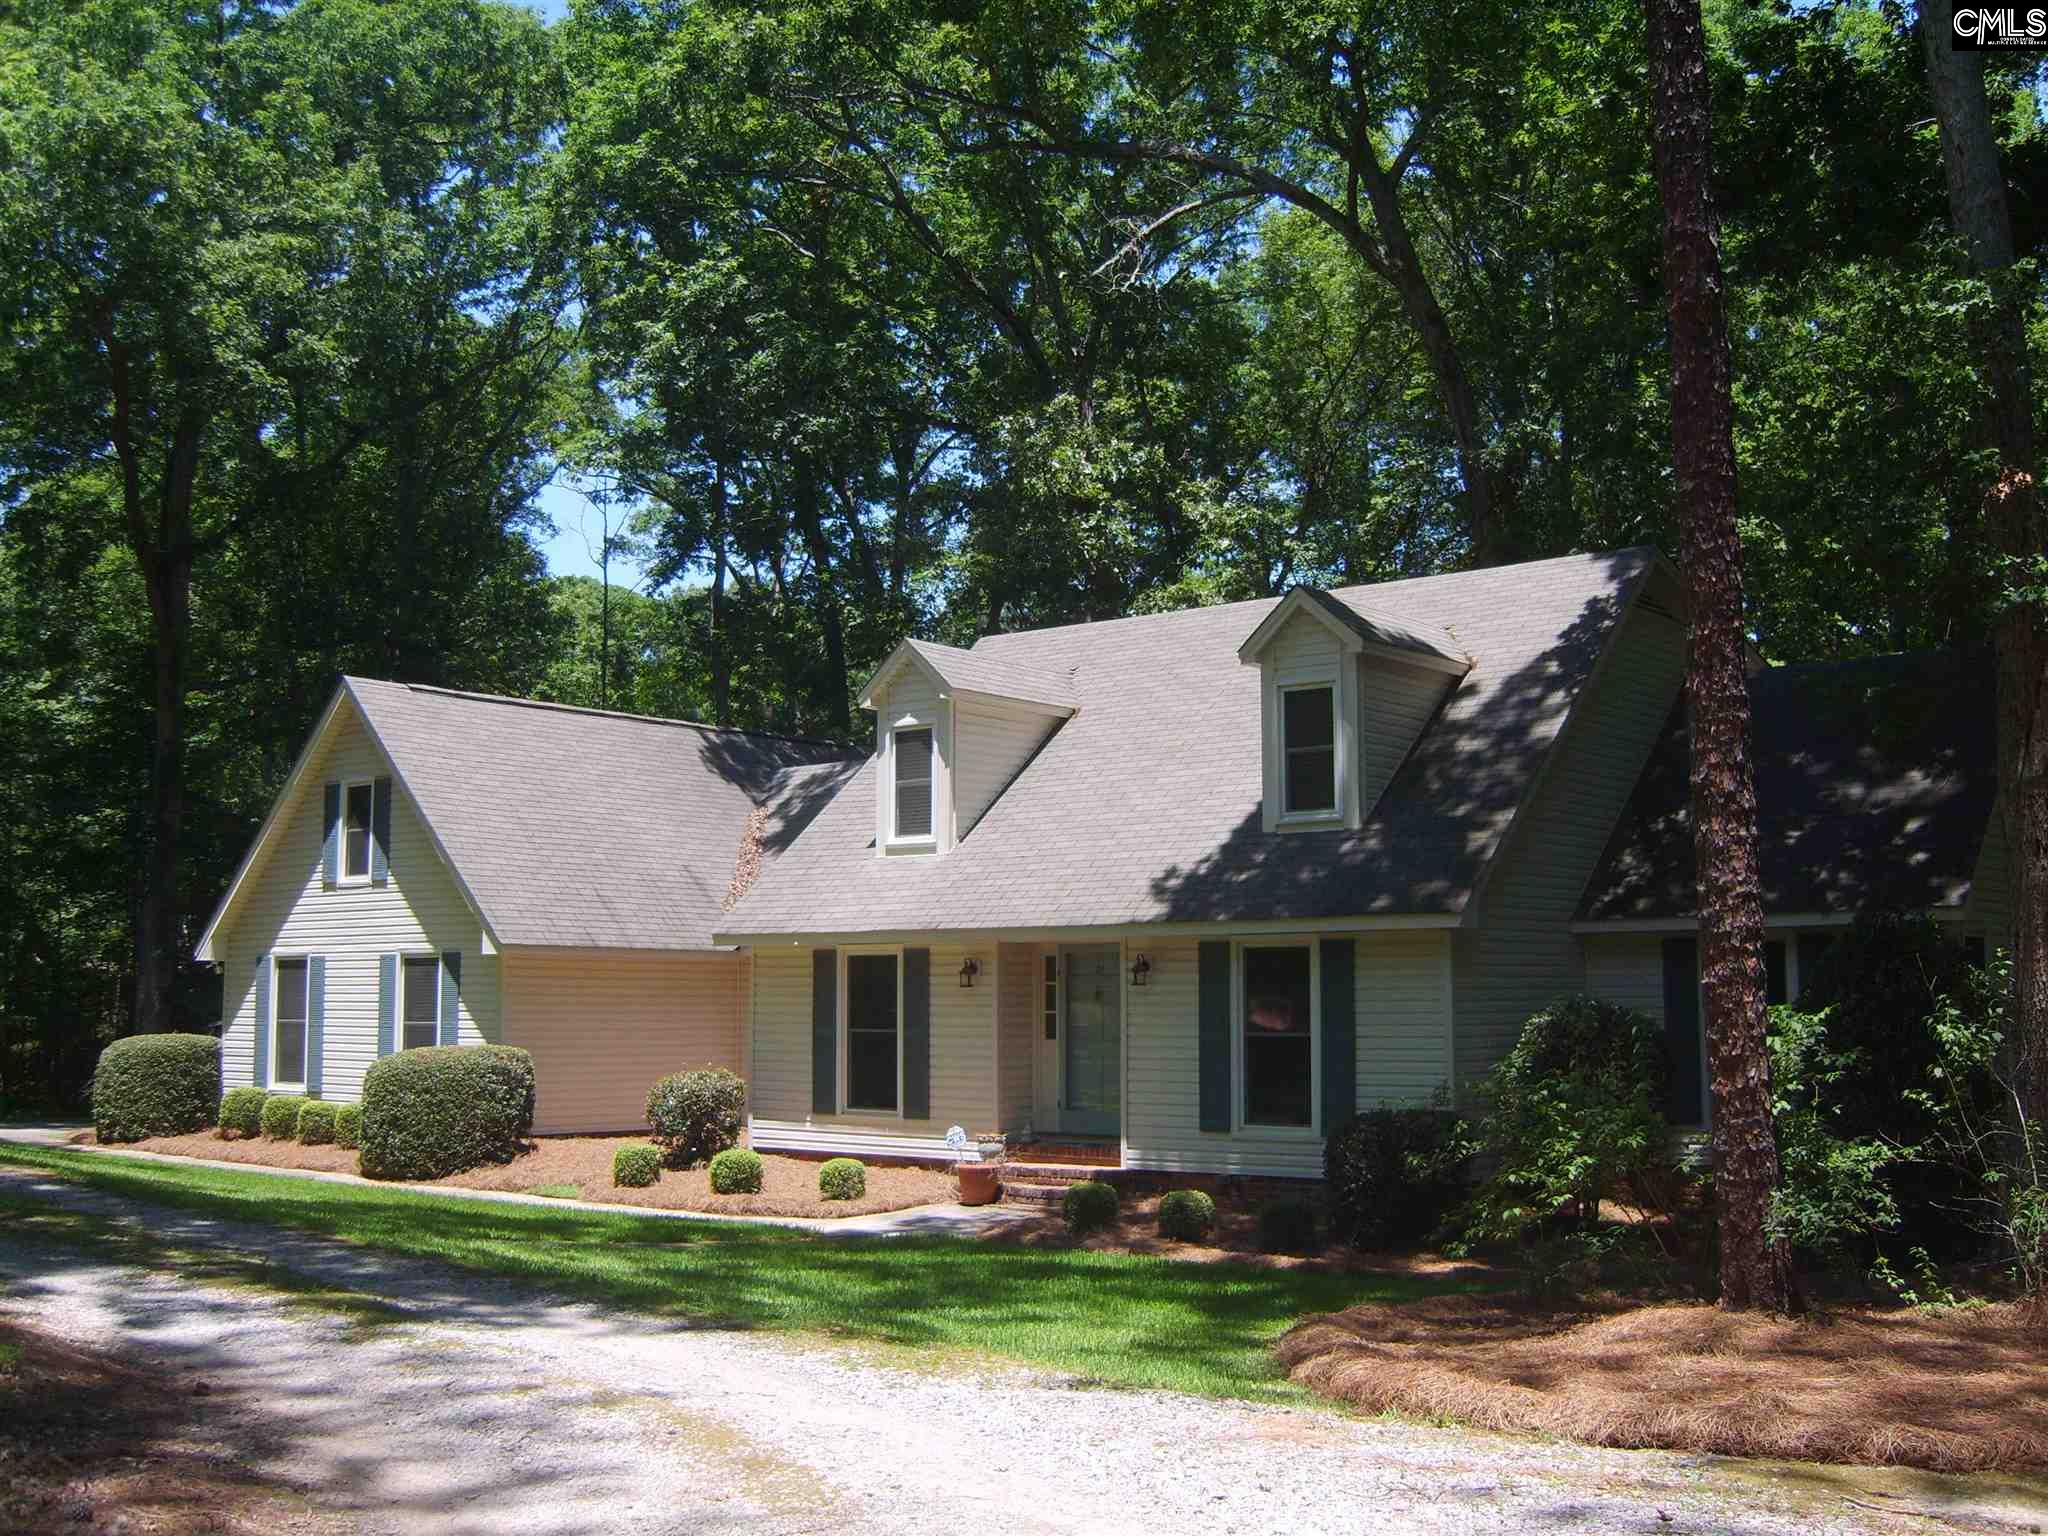 242 Hickory Hill Lexington, SC 29072-9348